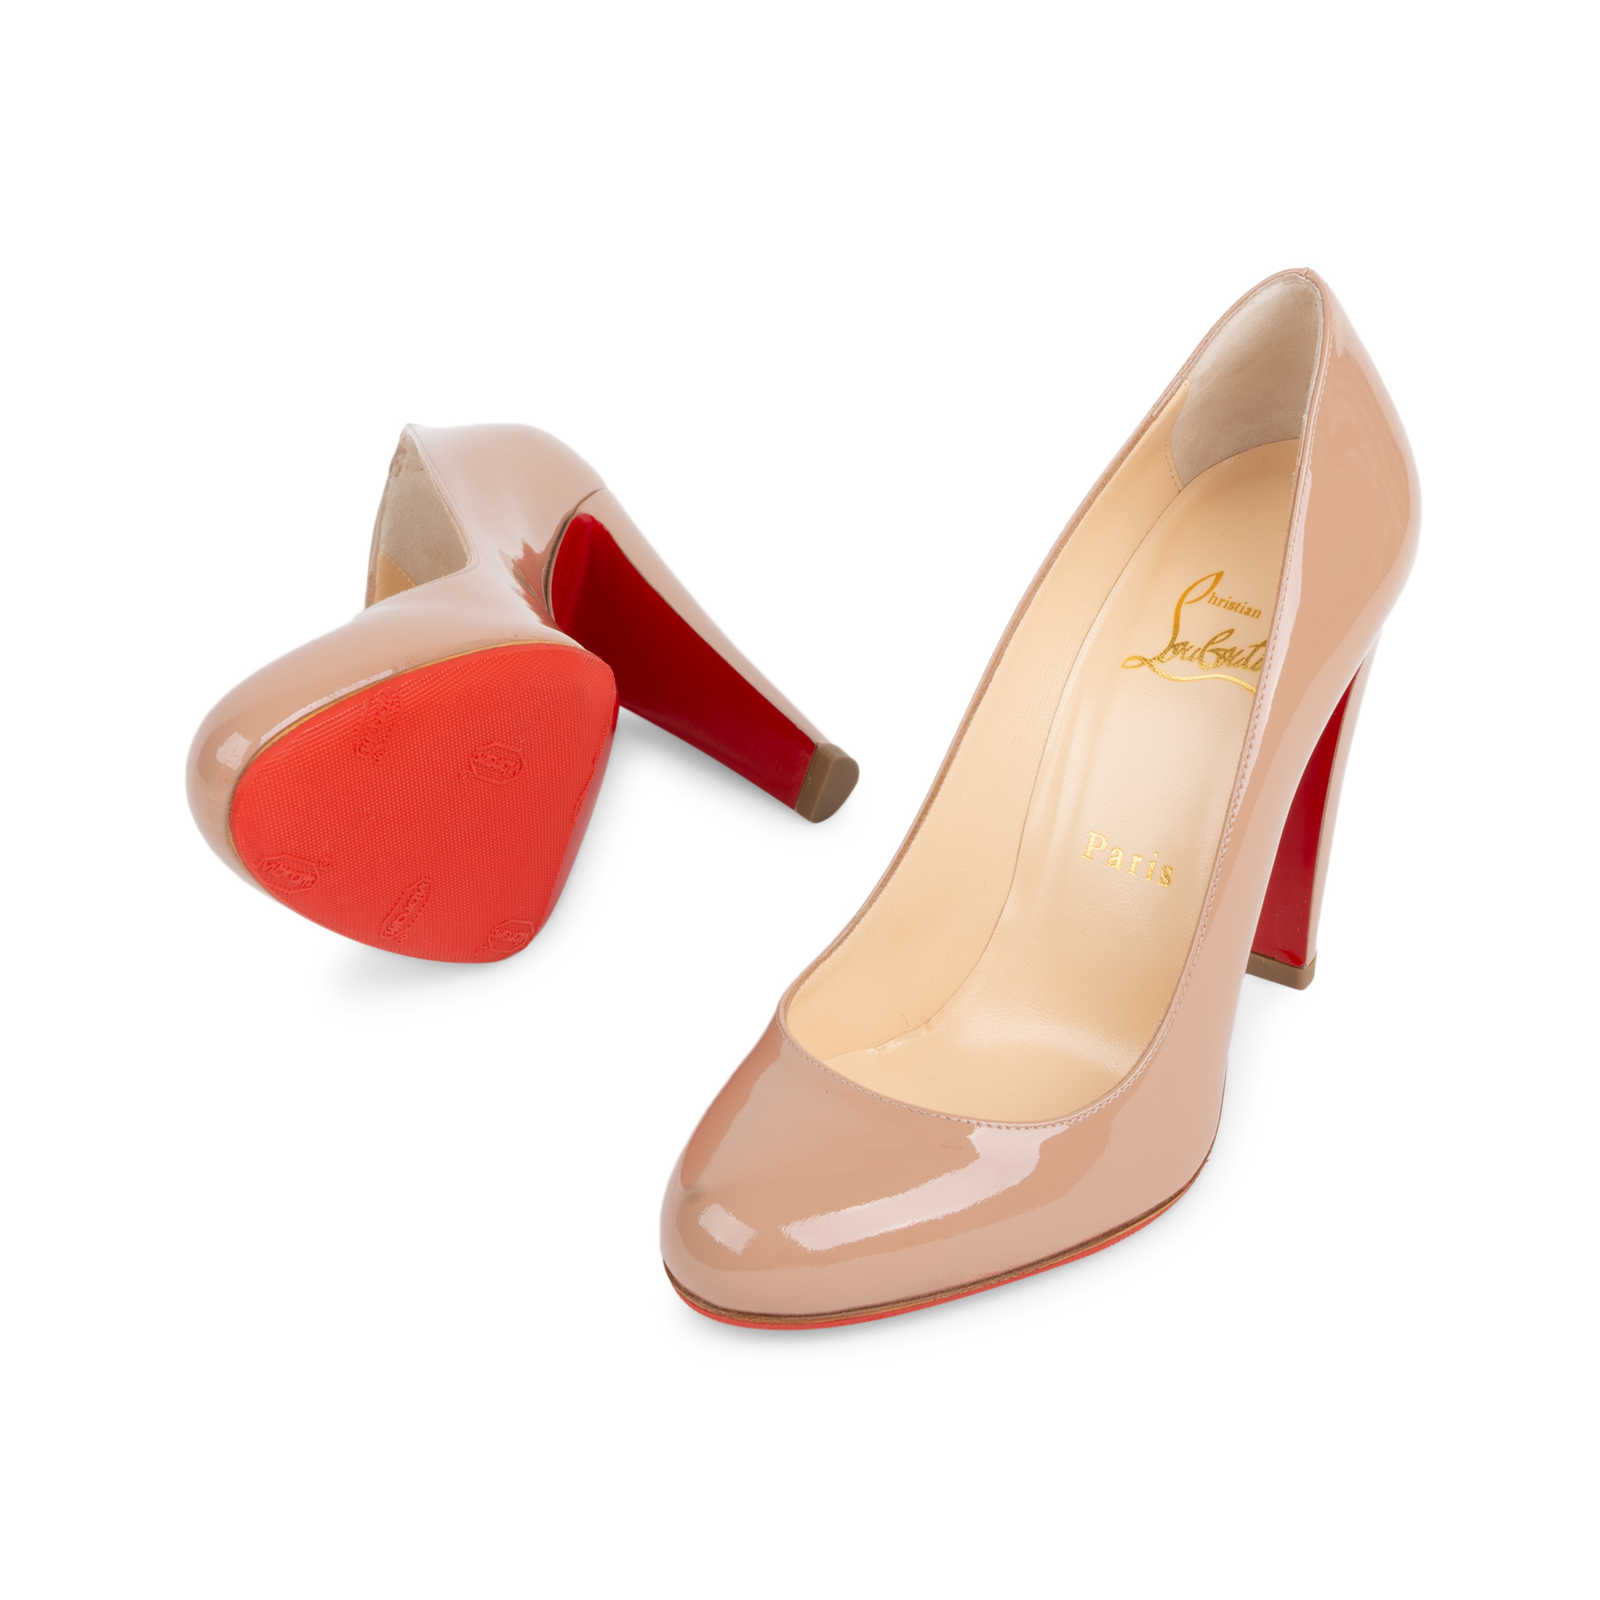 589d5627a16f ... Authentic Second Hand Christian Louboutin Fififa 100 Pumps  (PSS-566-00091) ...